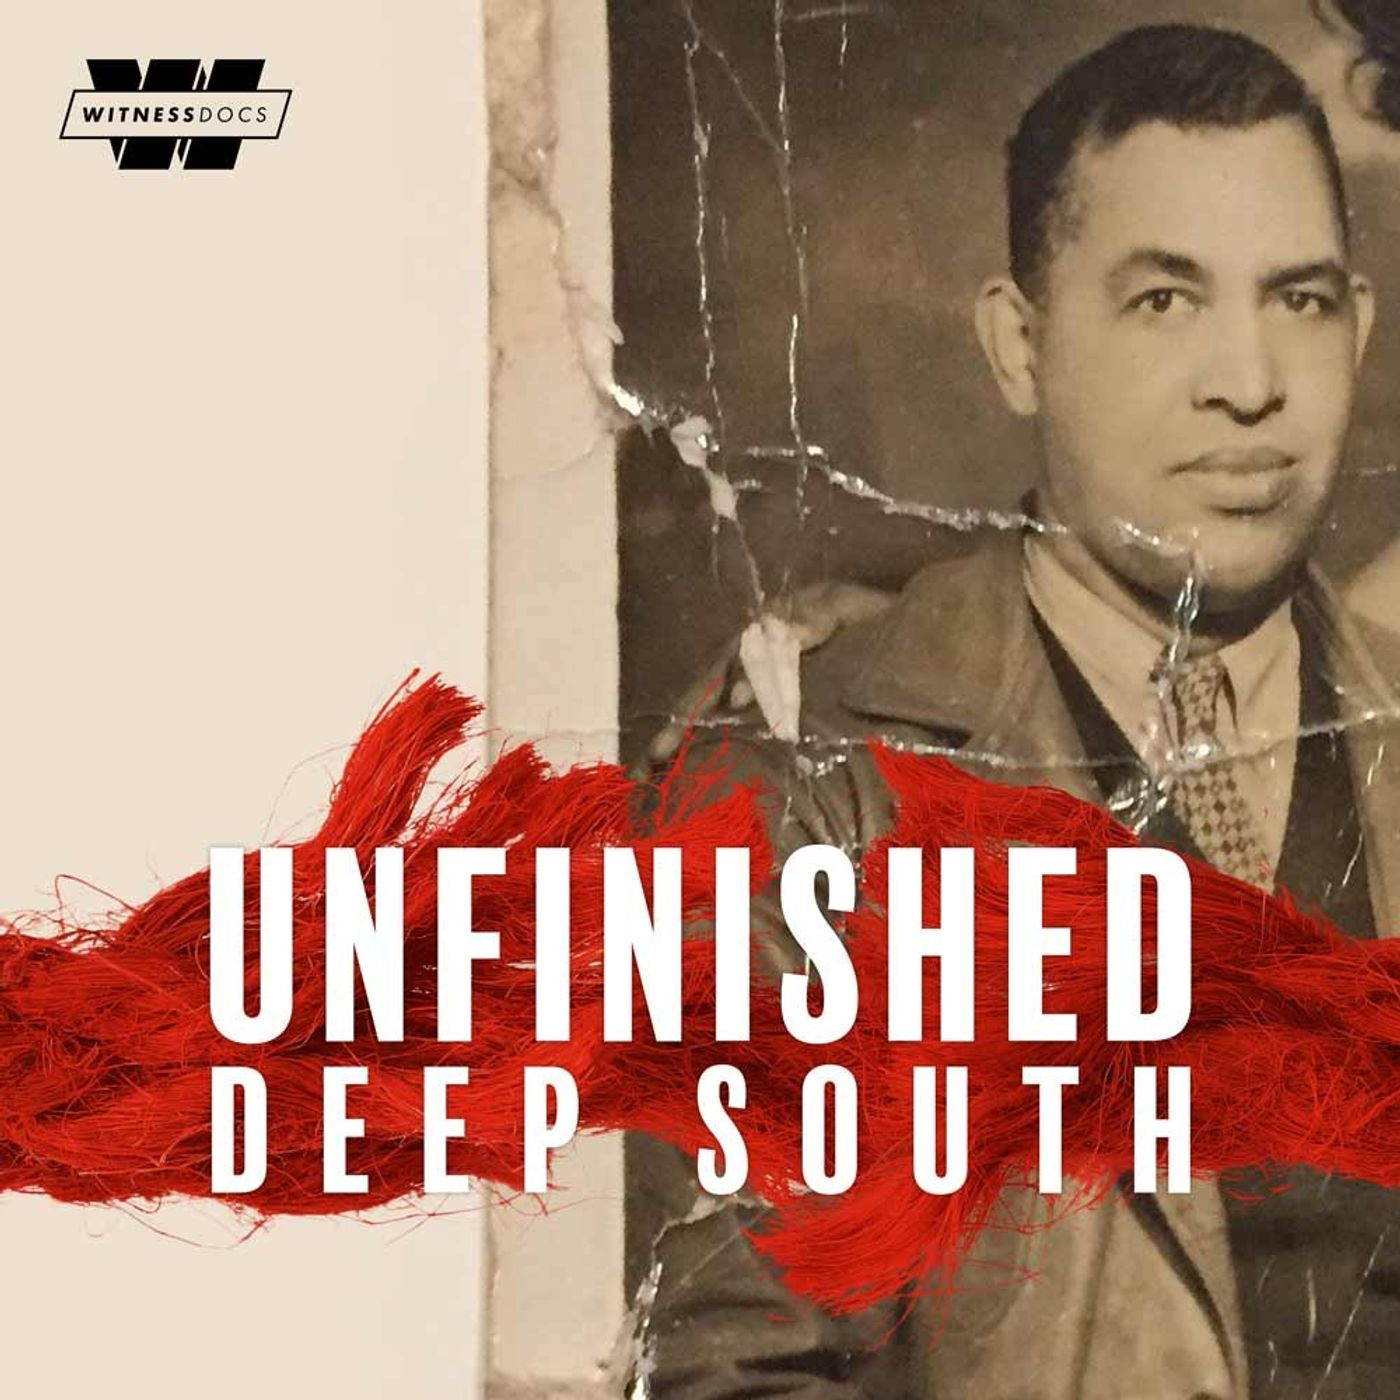 Introducing Unfinished: Deep South